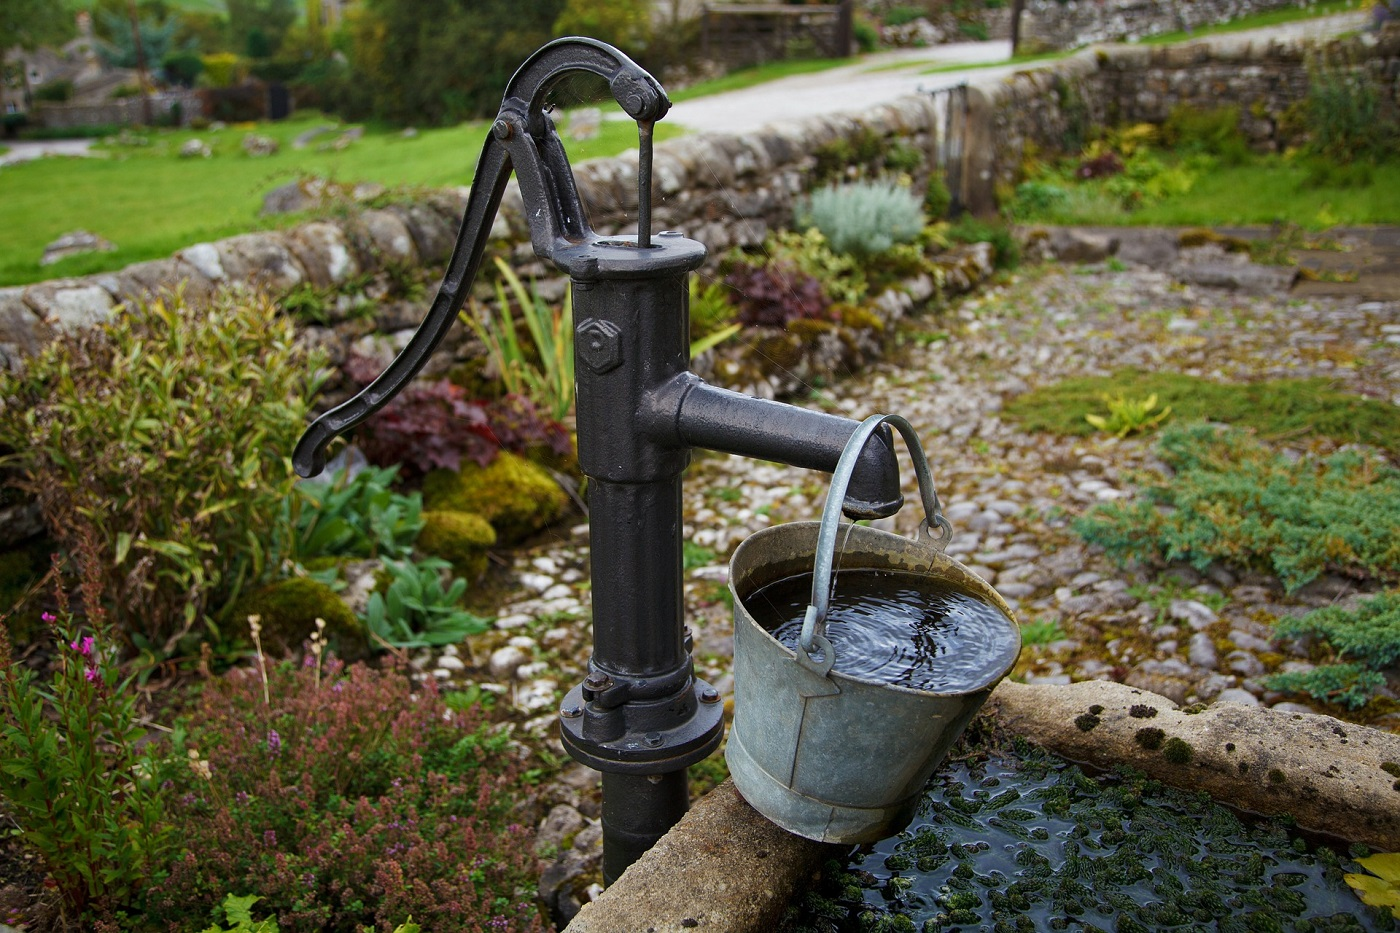 Water-collecting pail outdoors via Pixabay